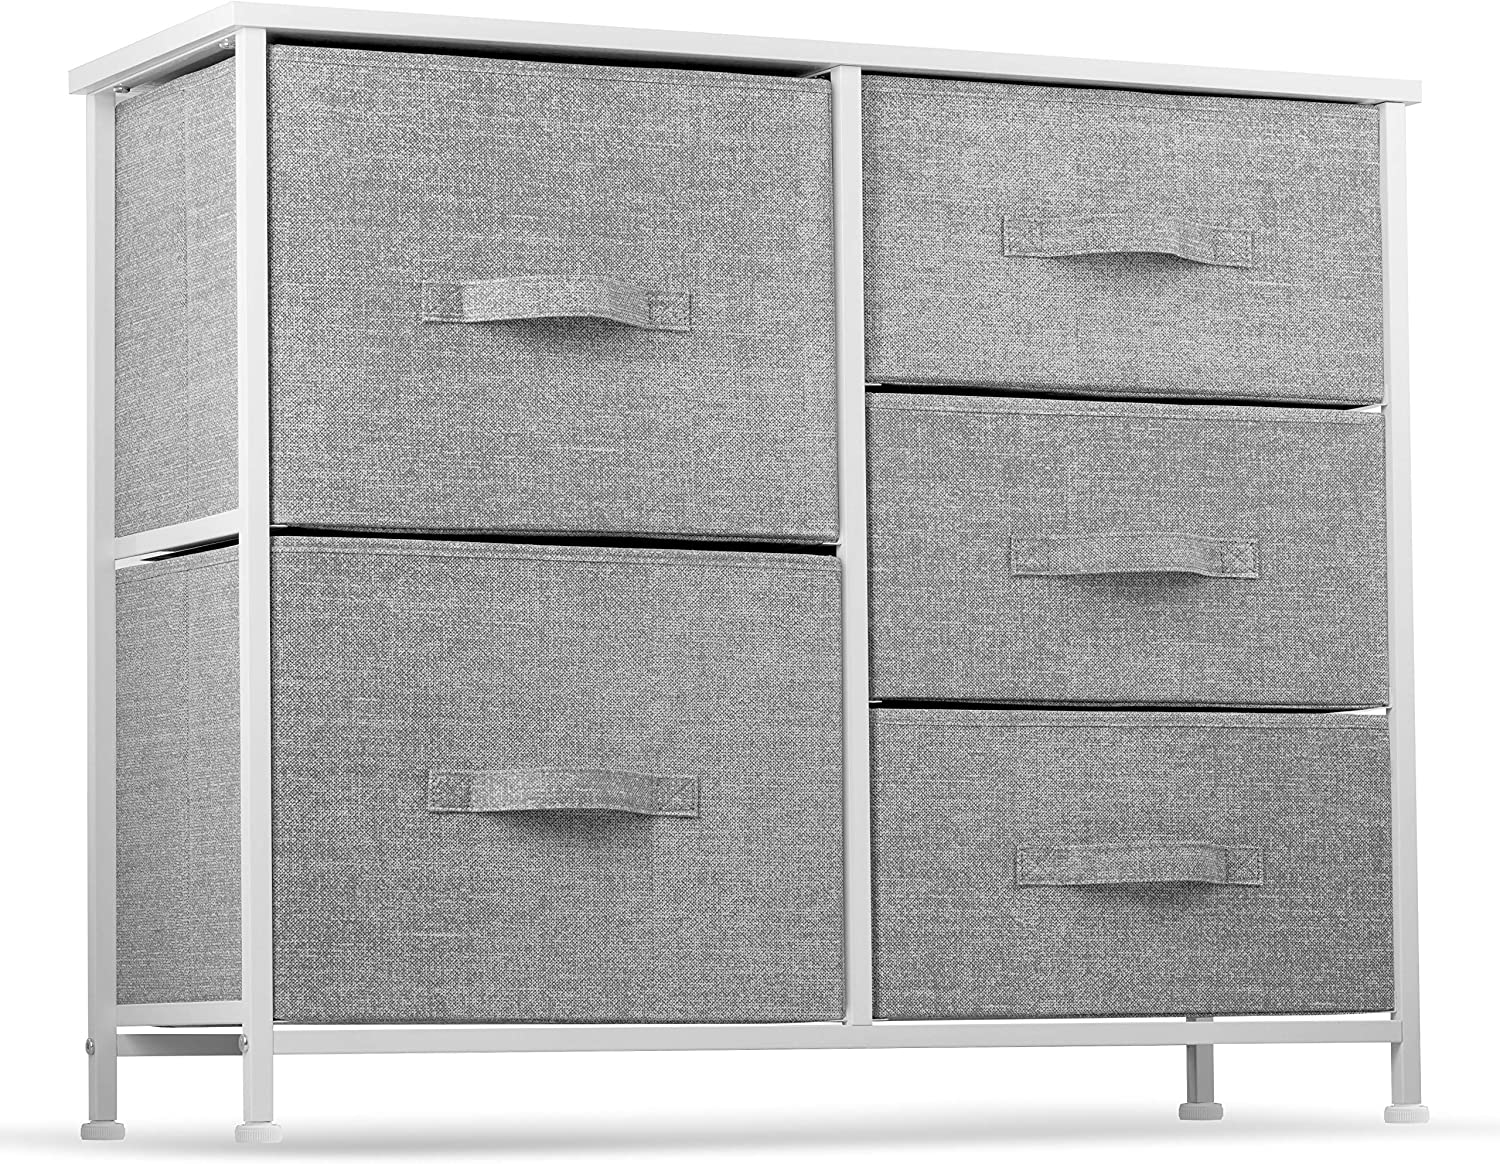 5 Drawer Dresser Organizer Fabric Storage Chest for Bedroom, Hallway, Entryway, Closets, Nurseries. Furniture Storage Tower Sturdy Steel Frame, Wood Top, Easy Pull Handle Textured Print Drawers: Kitchen & Dining